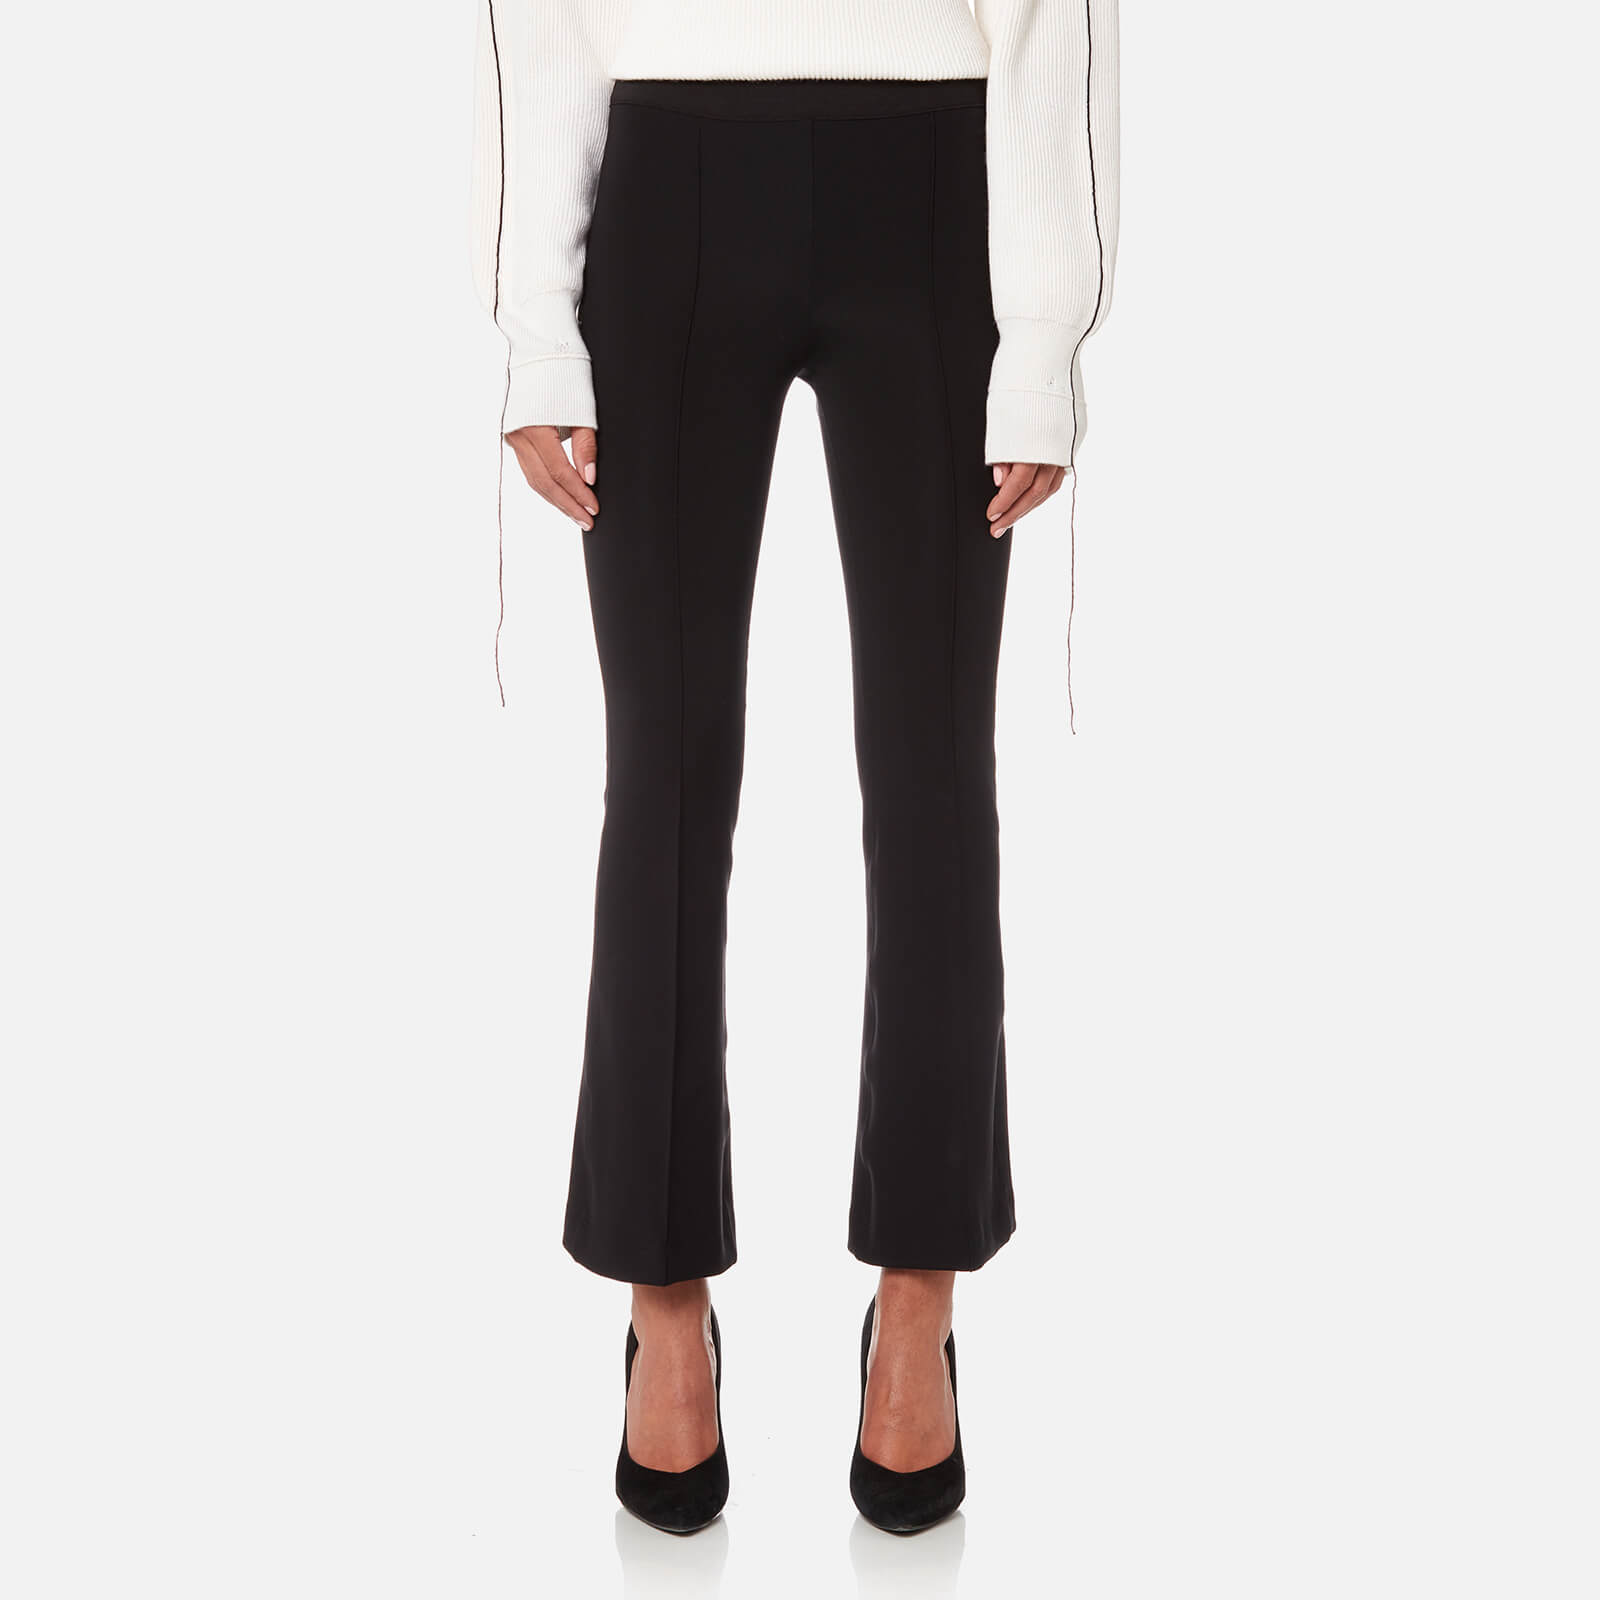 4f3124db6a251 Helmut Lang Women's Cropped Flare Leggings - Black - Free UK Delivery over  £50